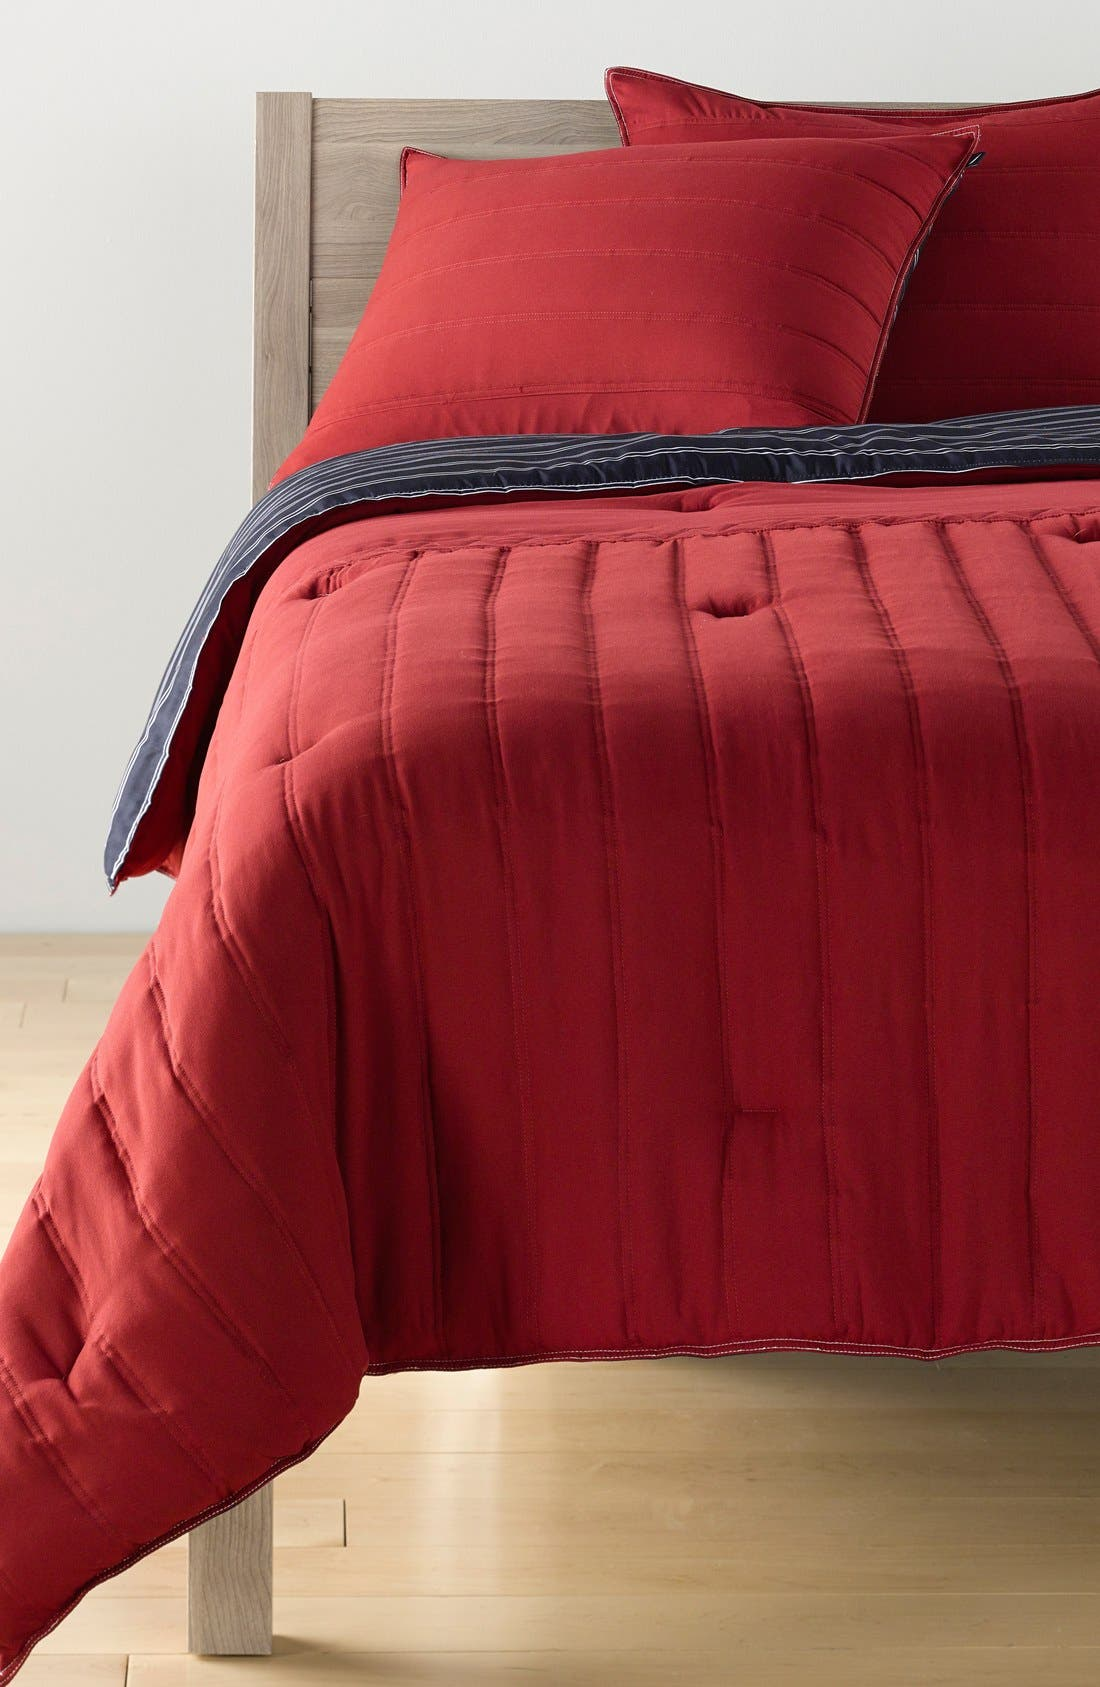 Alternate Image 1 Selected - Nautica Mainsail Quilted Comforter & Sham Set